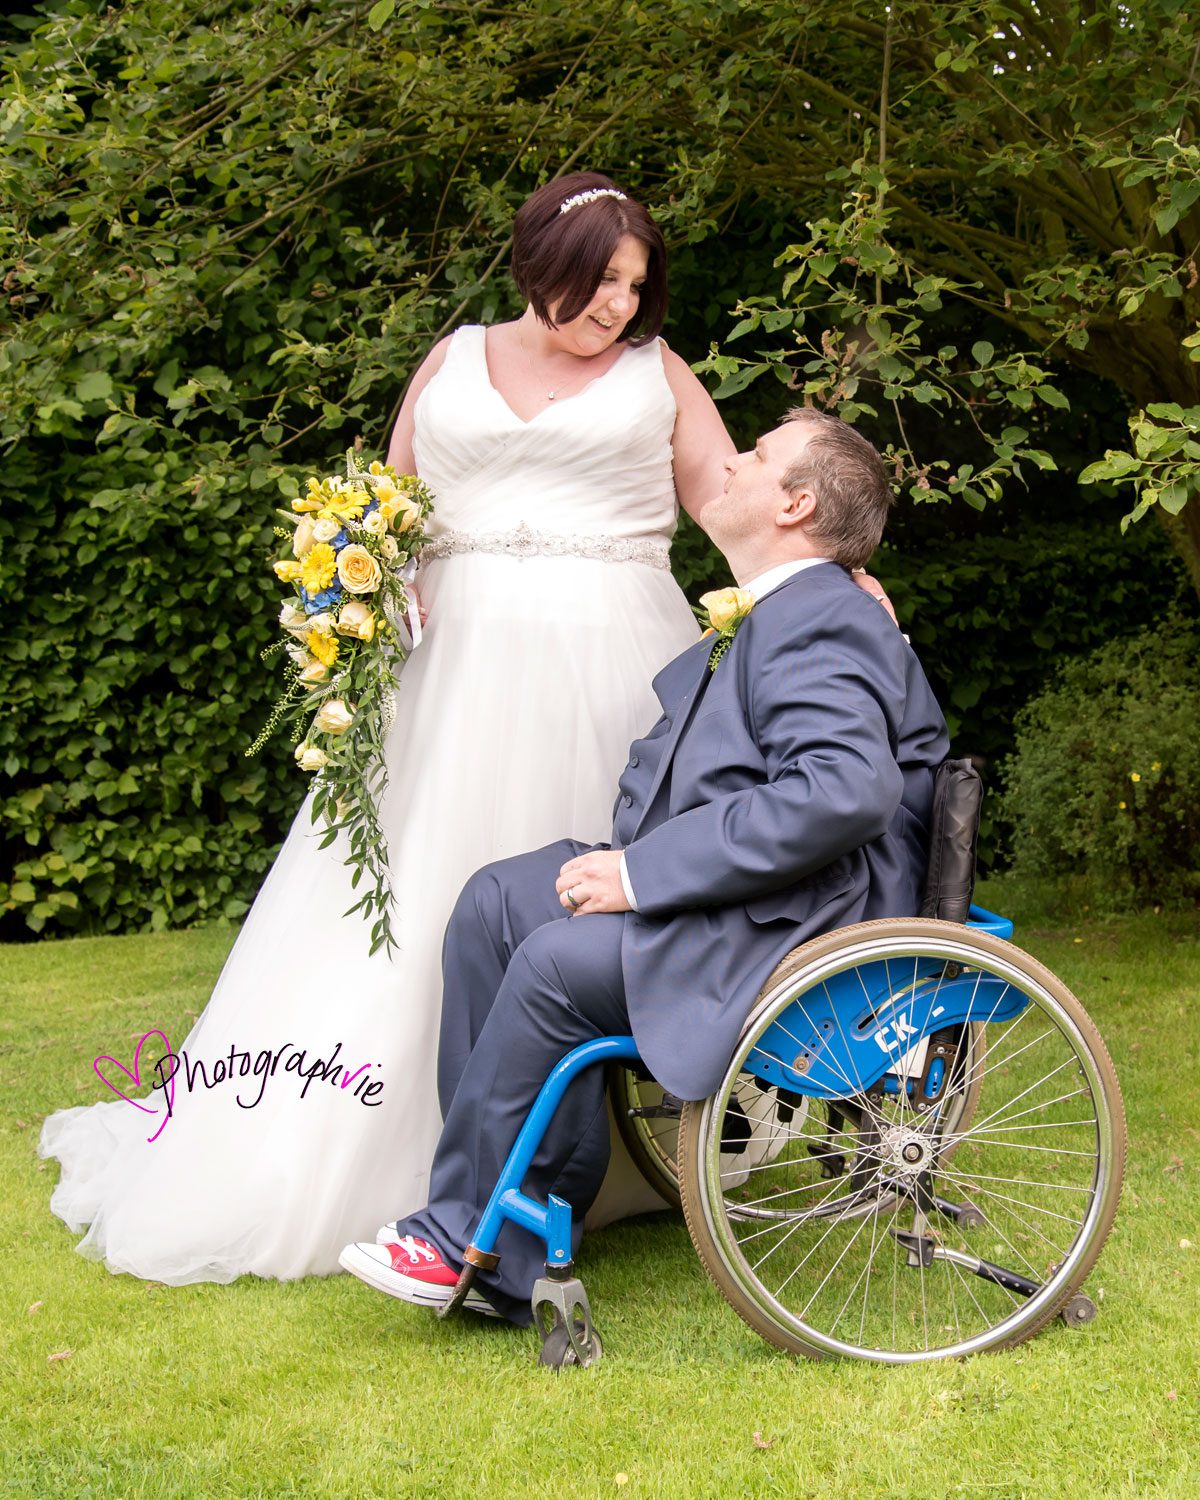 A beautiful day - For a beautiful couple...